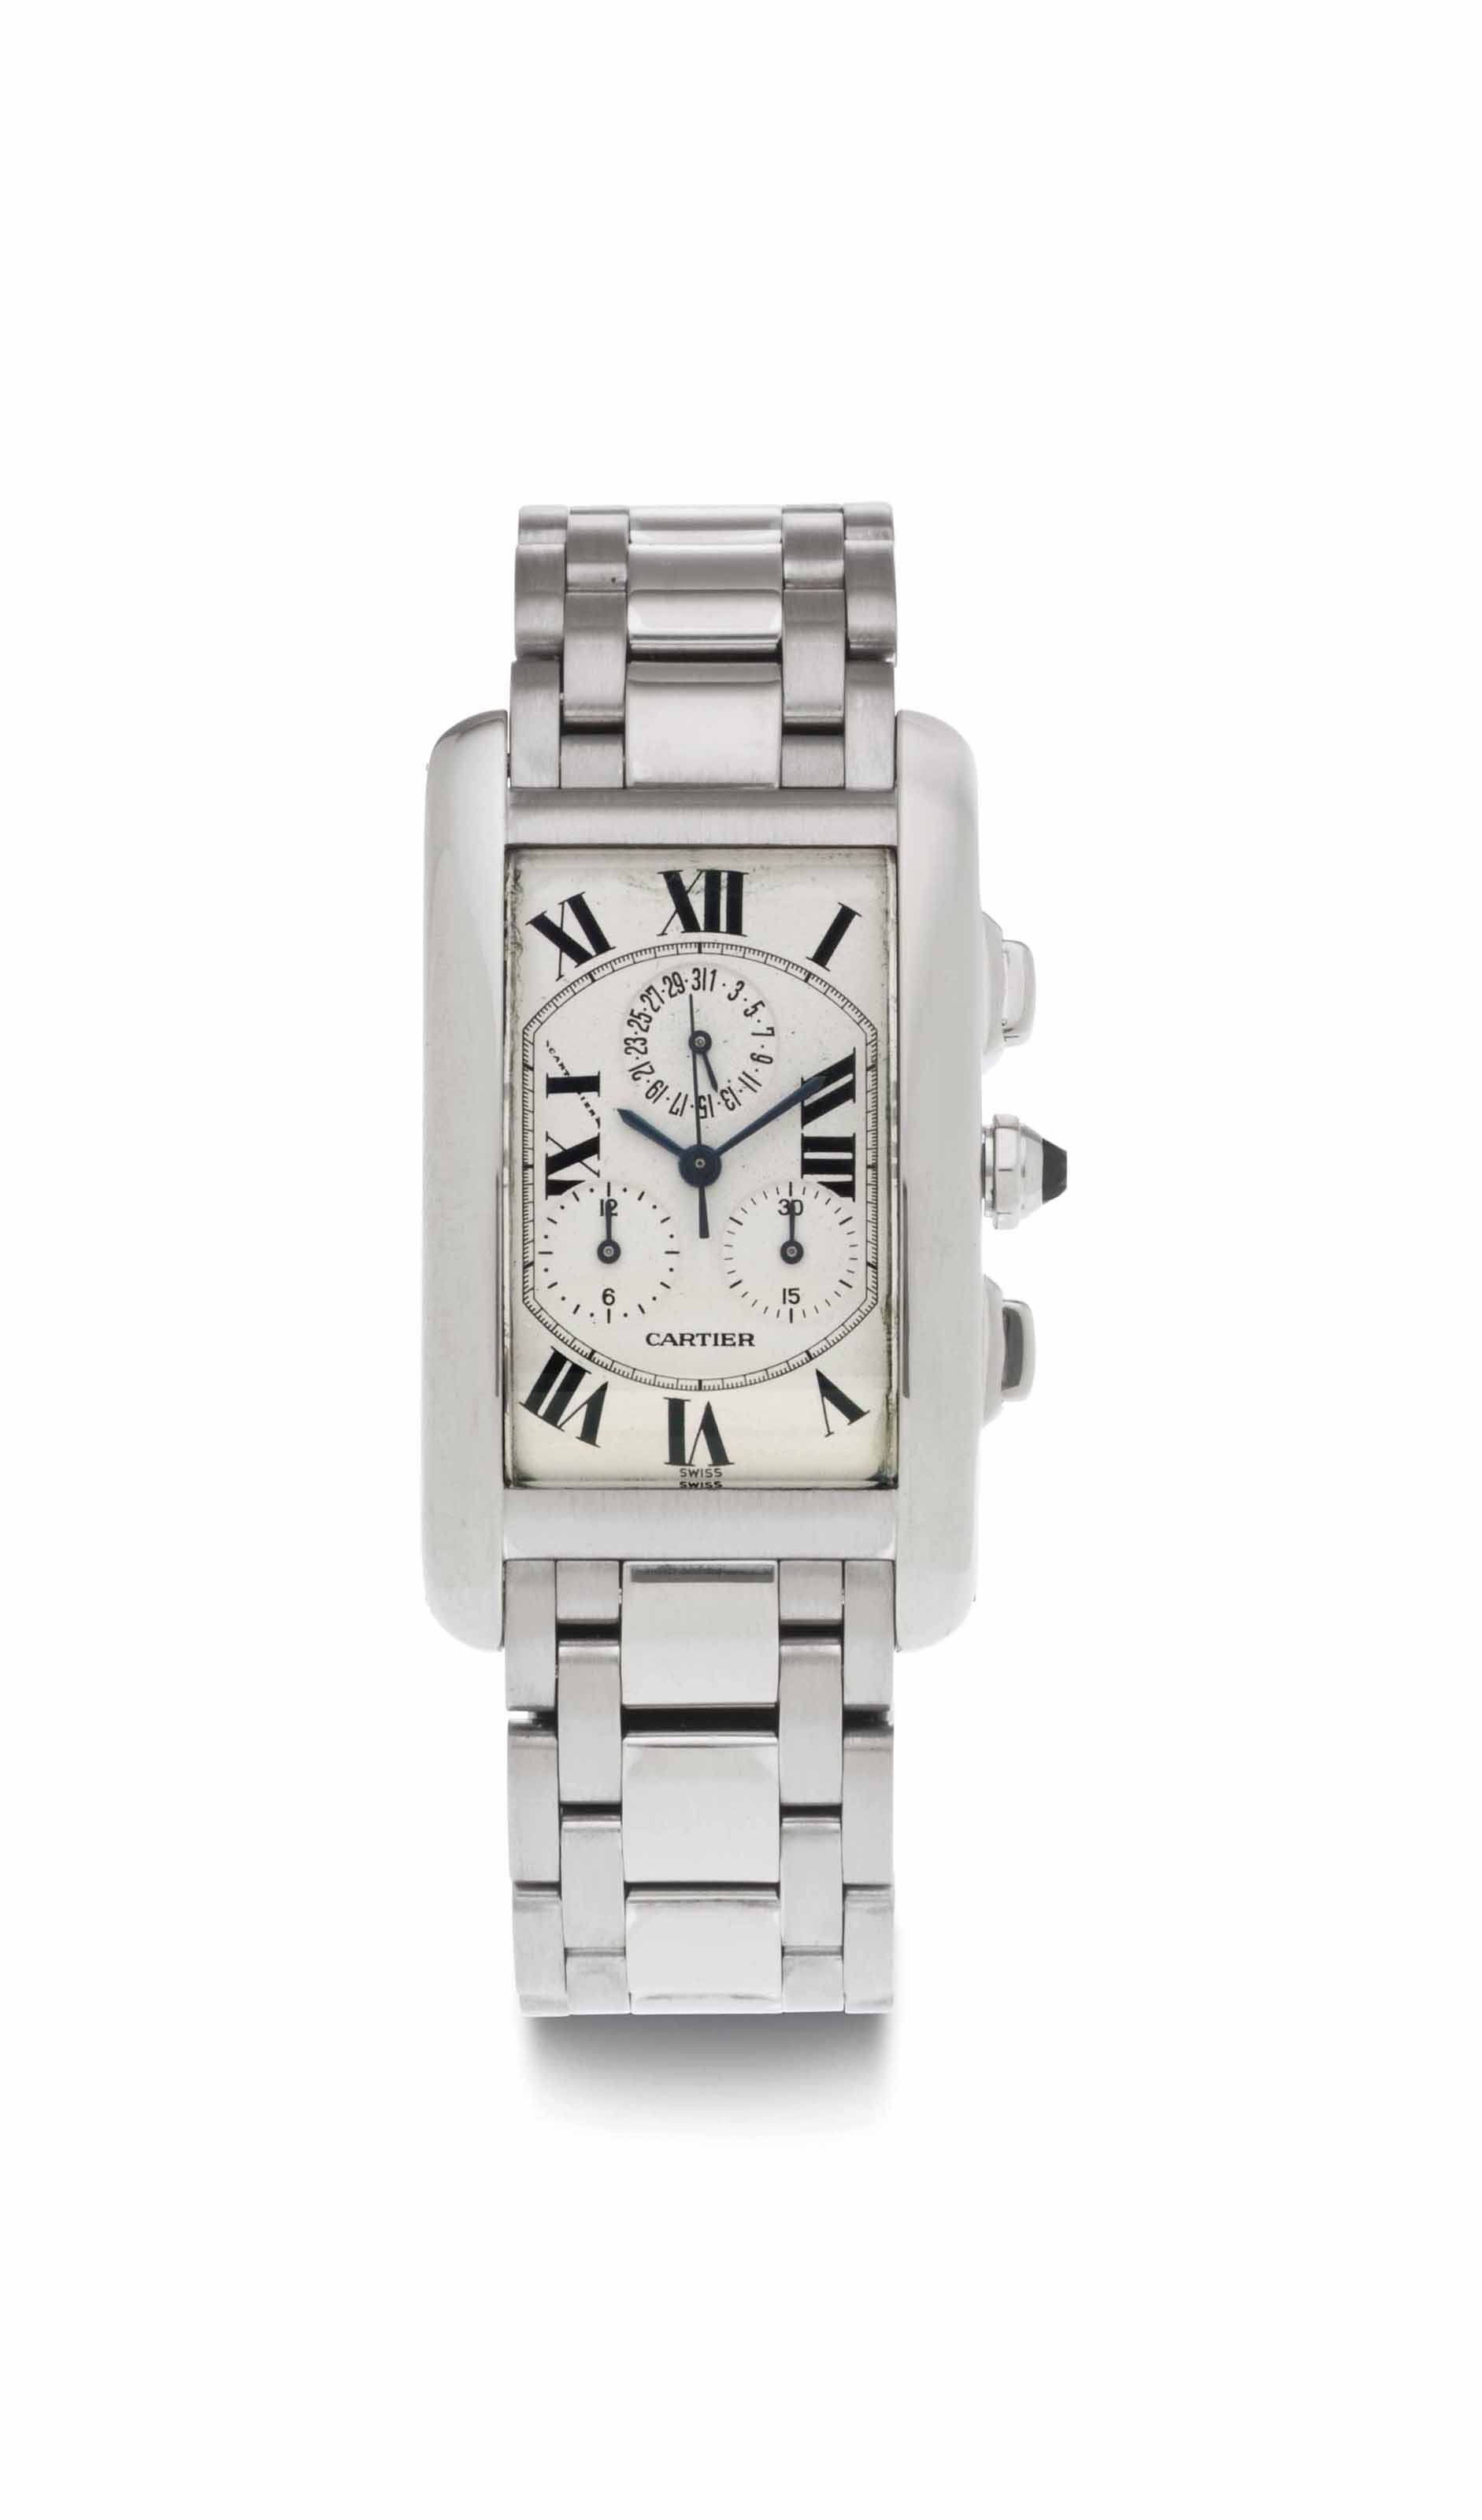 Cartier. An 18k White Gold Chr